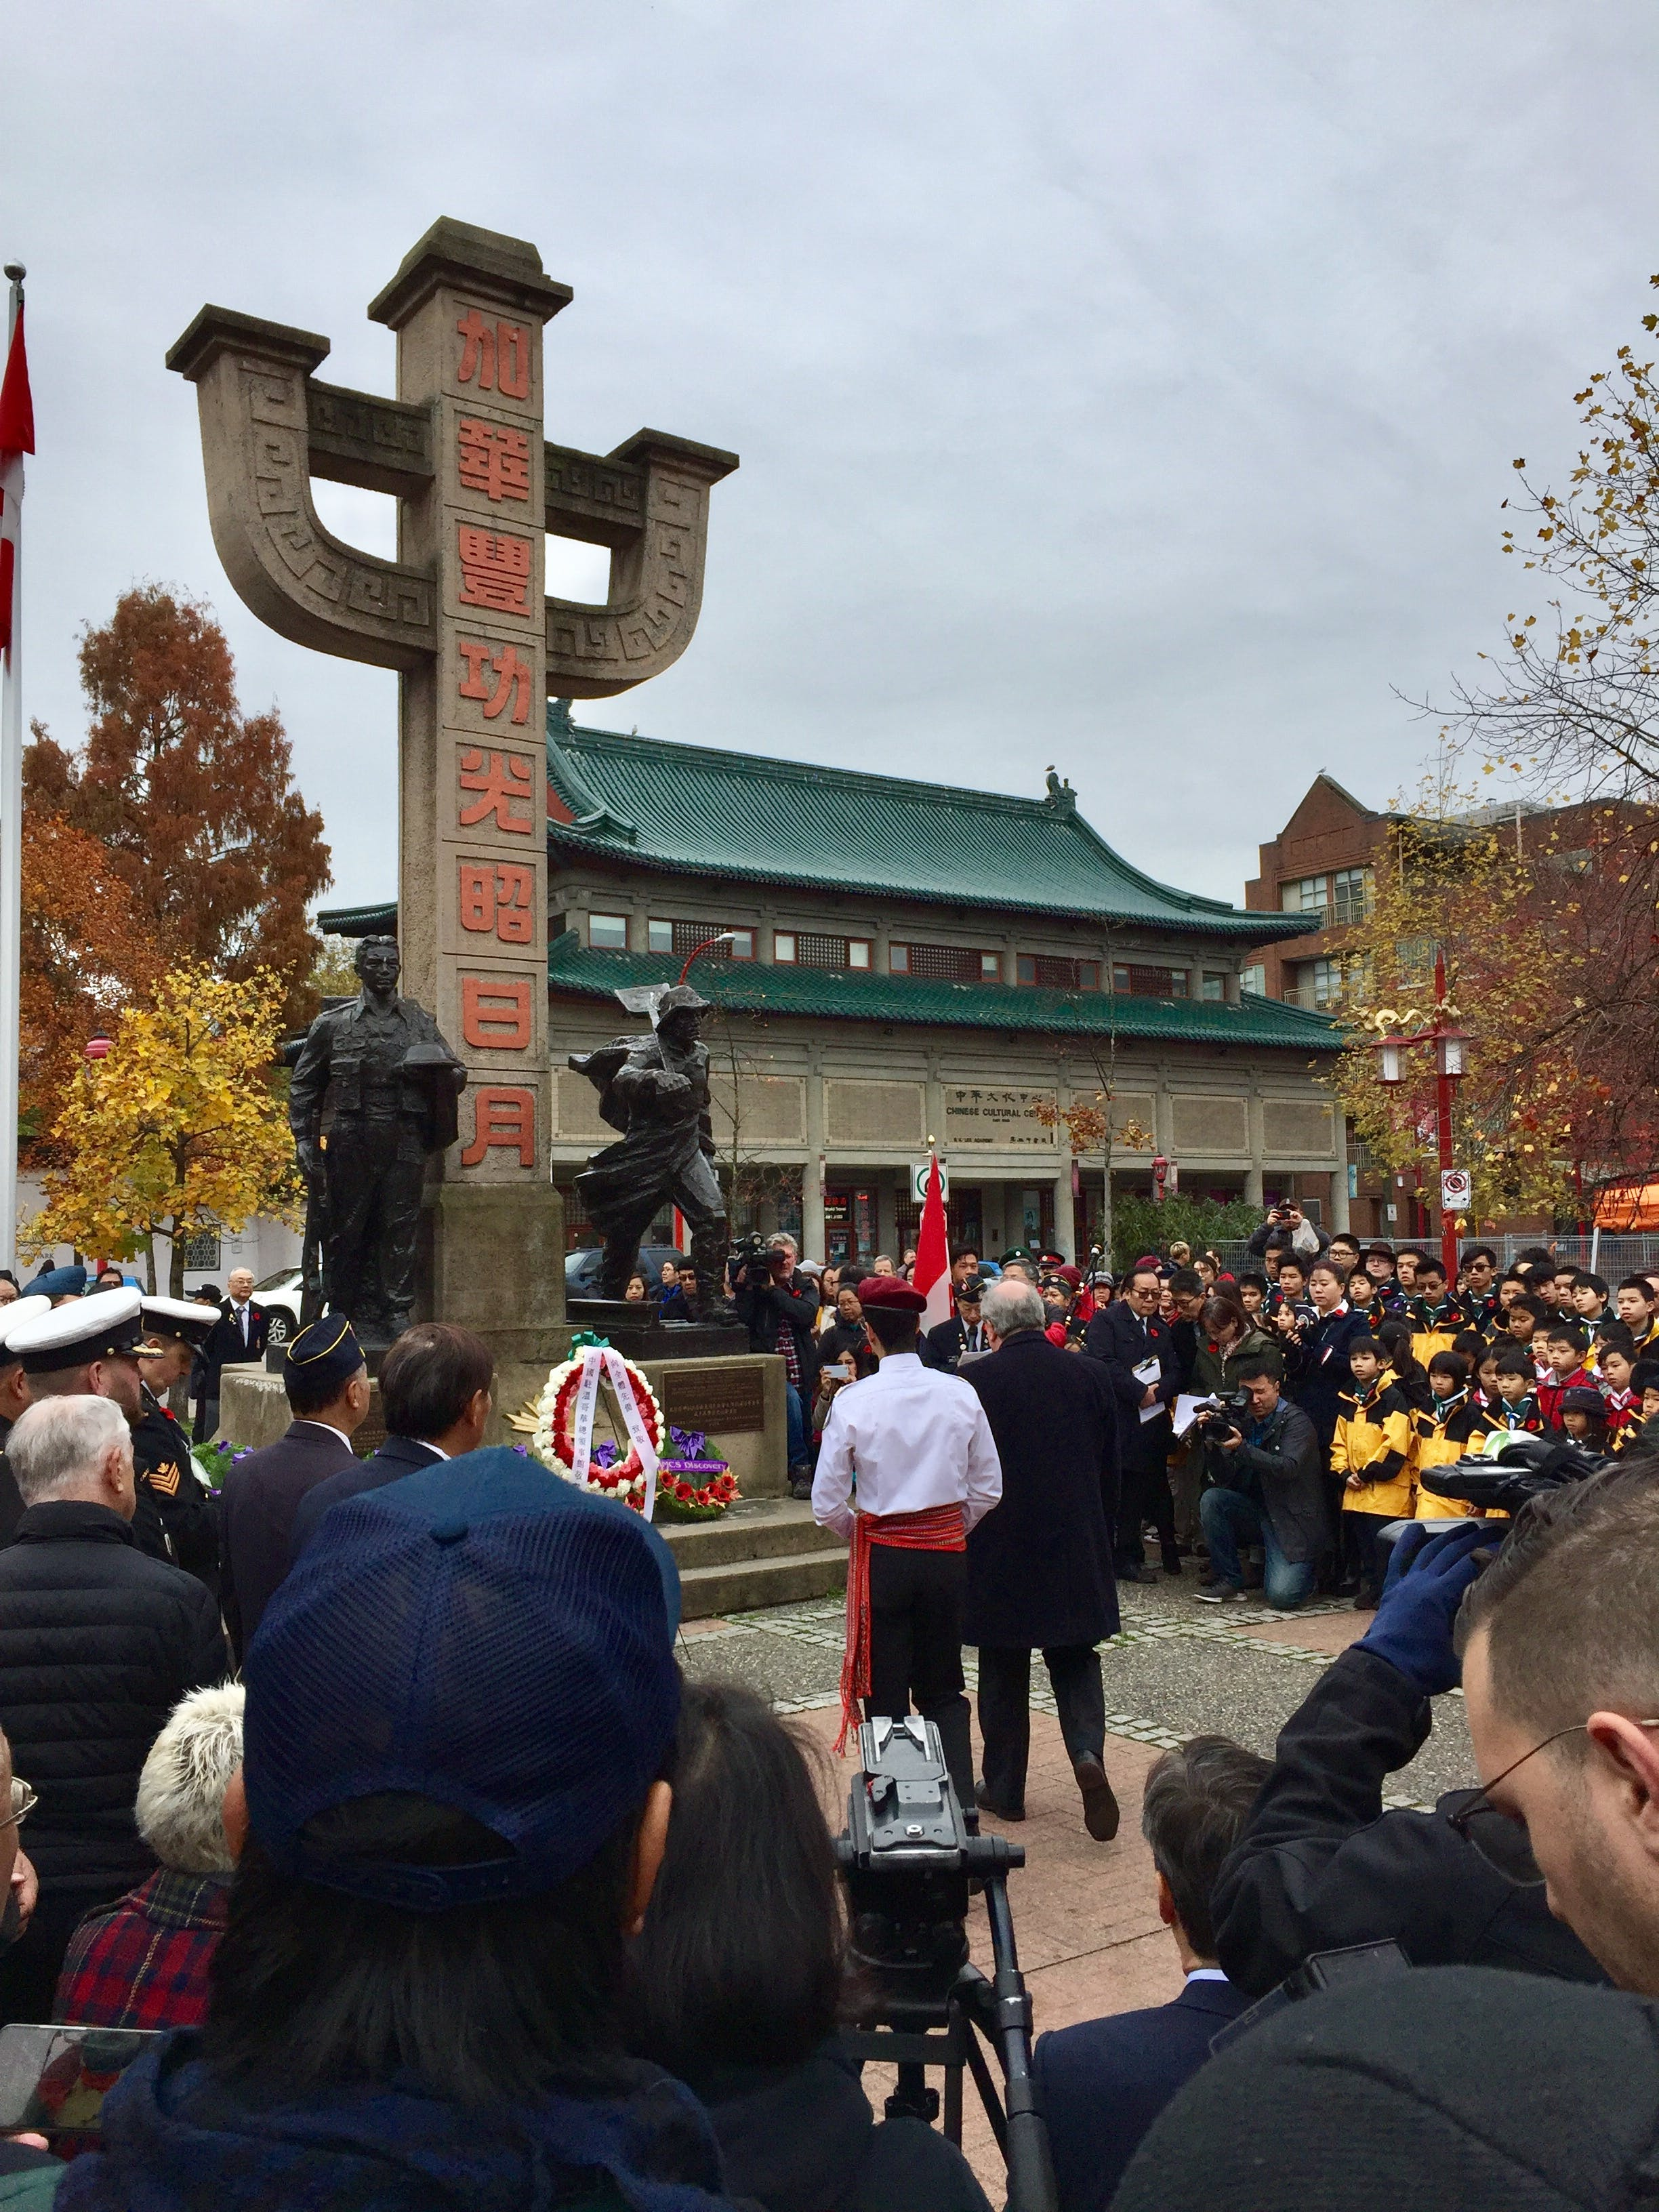 Several people surround the monument in Memorial Plaza, honouring the contributions of Chinese-Canadians to Canada